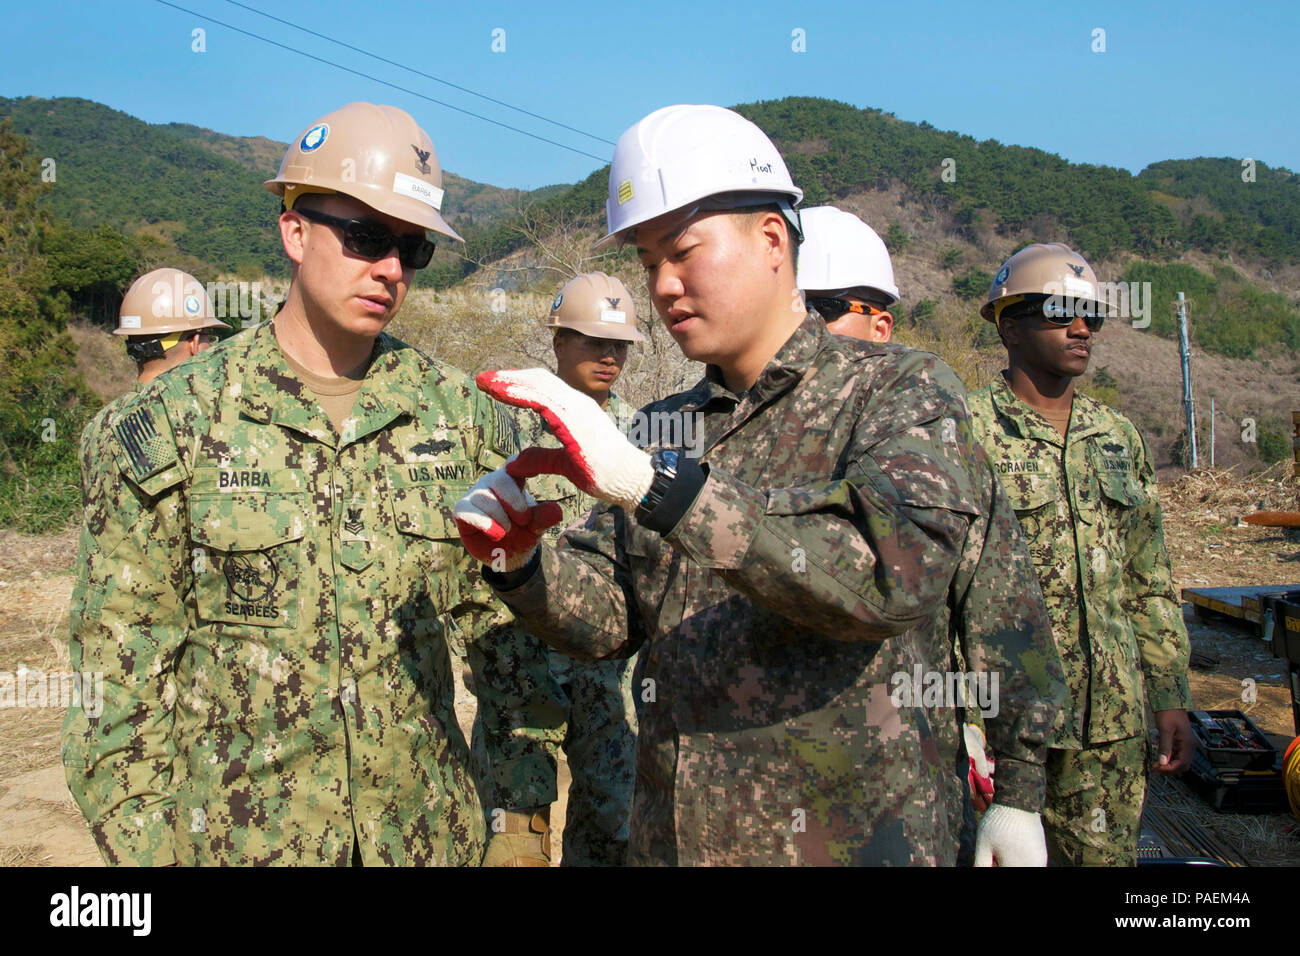 160327-N-NE195-001  YOKIJIDO ISLAND, Republic of Korea (Mar. 27, 2016) - Prior to the construction of a road project on Yokjido Island, Builder 1st Class Oscar Barba, assigned to Naval Mobile Construction Battalion (NMCB) 4 and an engineer from the Republic of Korea (ROK) Construction Battalion, discuss the difference between the metric system and the U.S. customary unit of measurement during Exercise Foal Eagle, Mar. 27. The paved road will shorten the distance of travel to connect 2,000 locals more efficiently to exchange goods, services and improve economical growth. Foal Eagle is a series  - Stock Image